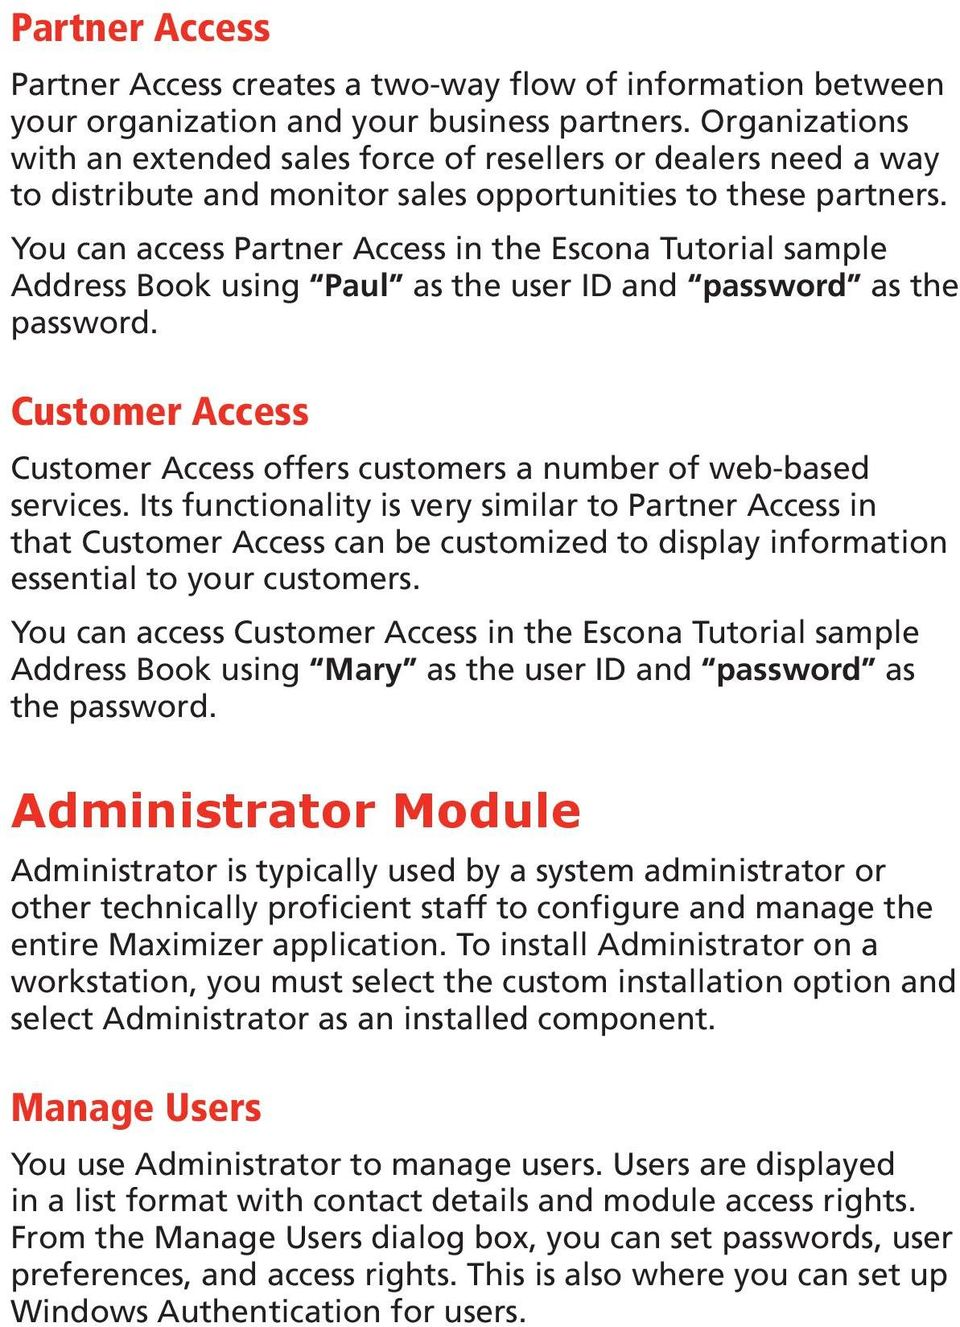 You can access Partner Access in the Escona Tutorial sample Address Book using Paul as the user ID and password as the password.